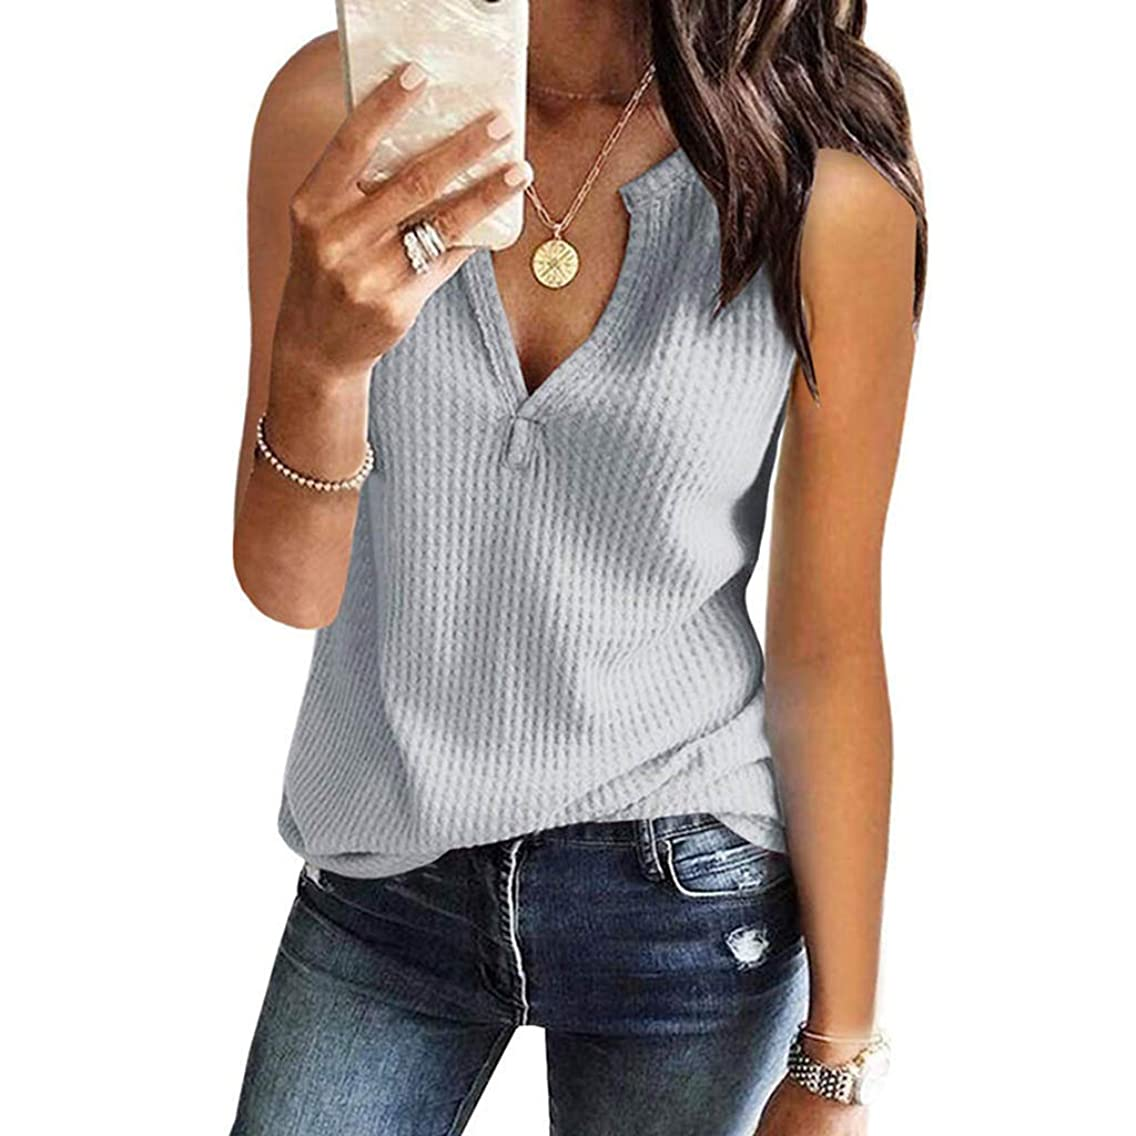 GHrcvdhw Womens Stylish V Neck Shirts Sleeveless Solid Waffle Knit Tanks Loose Fitting Tops Blouse